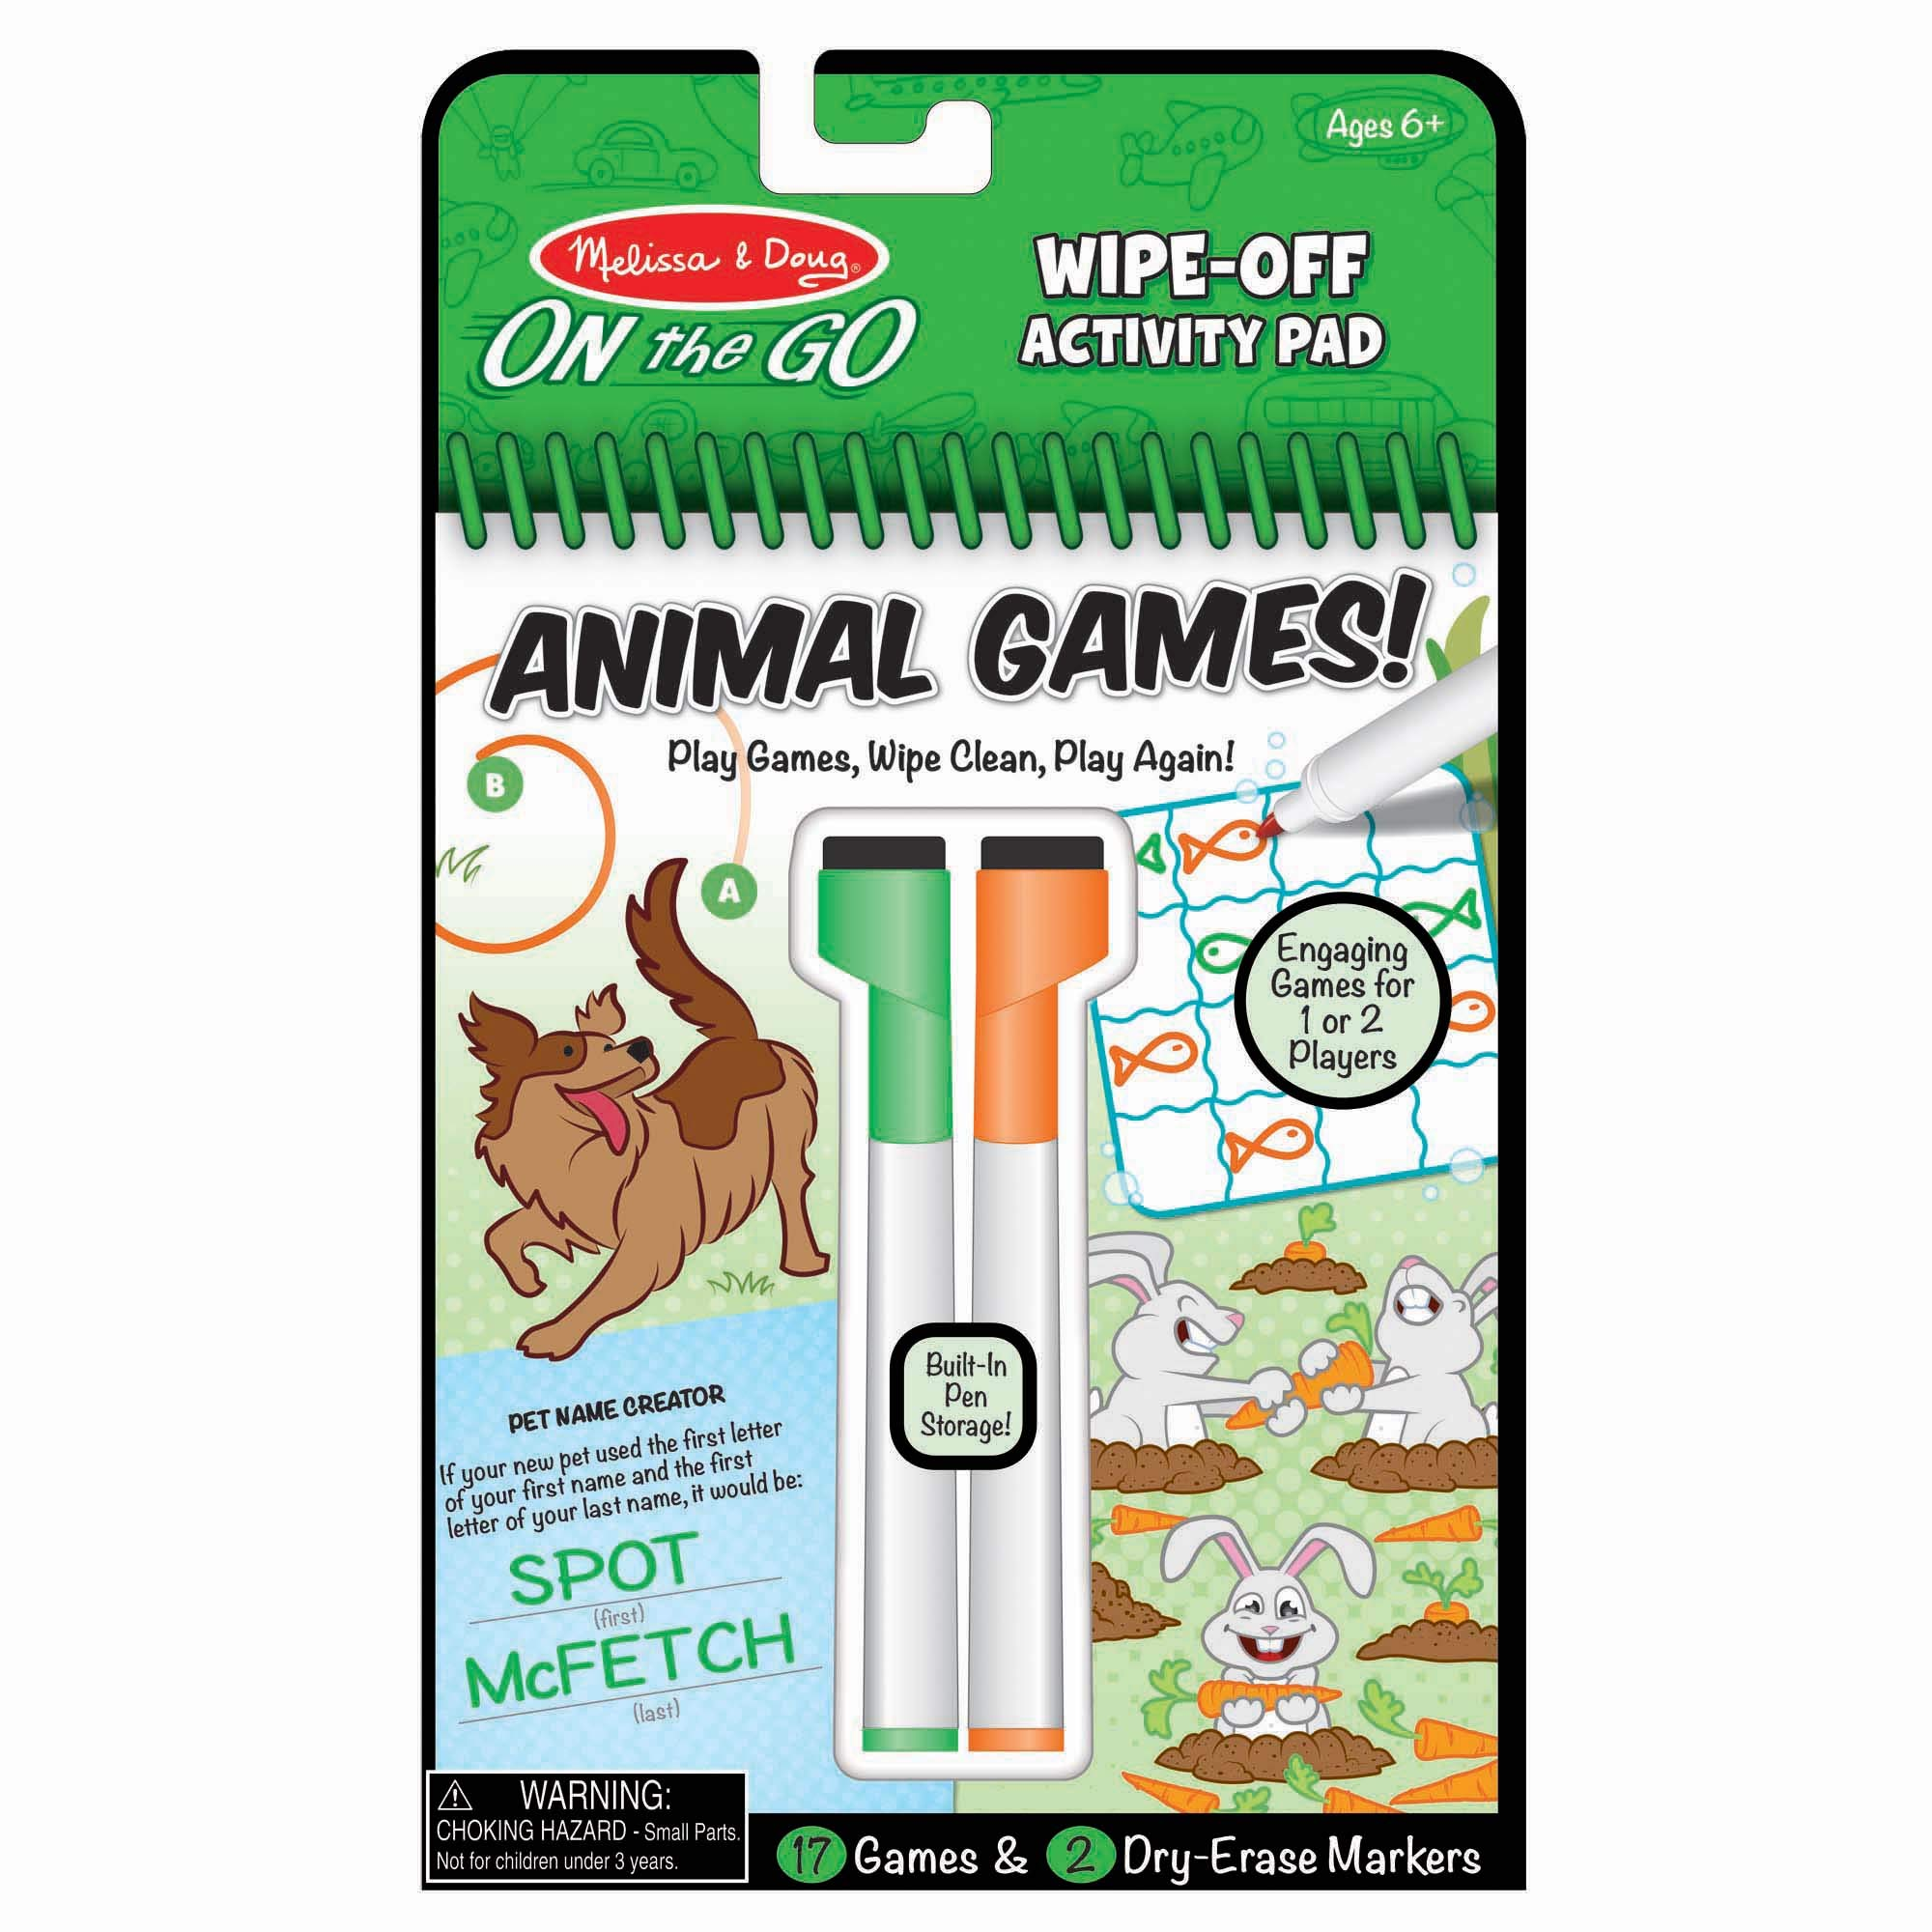 Melissa & Doug On The Go Animal Games Wipe-Off Activity Pad Reusable Travel Toy with 2 Dry-Erase Markers, Great Gift for Girls and Boys - Best for 6, 7, 8 Year Olds and Up, Multi (30171)